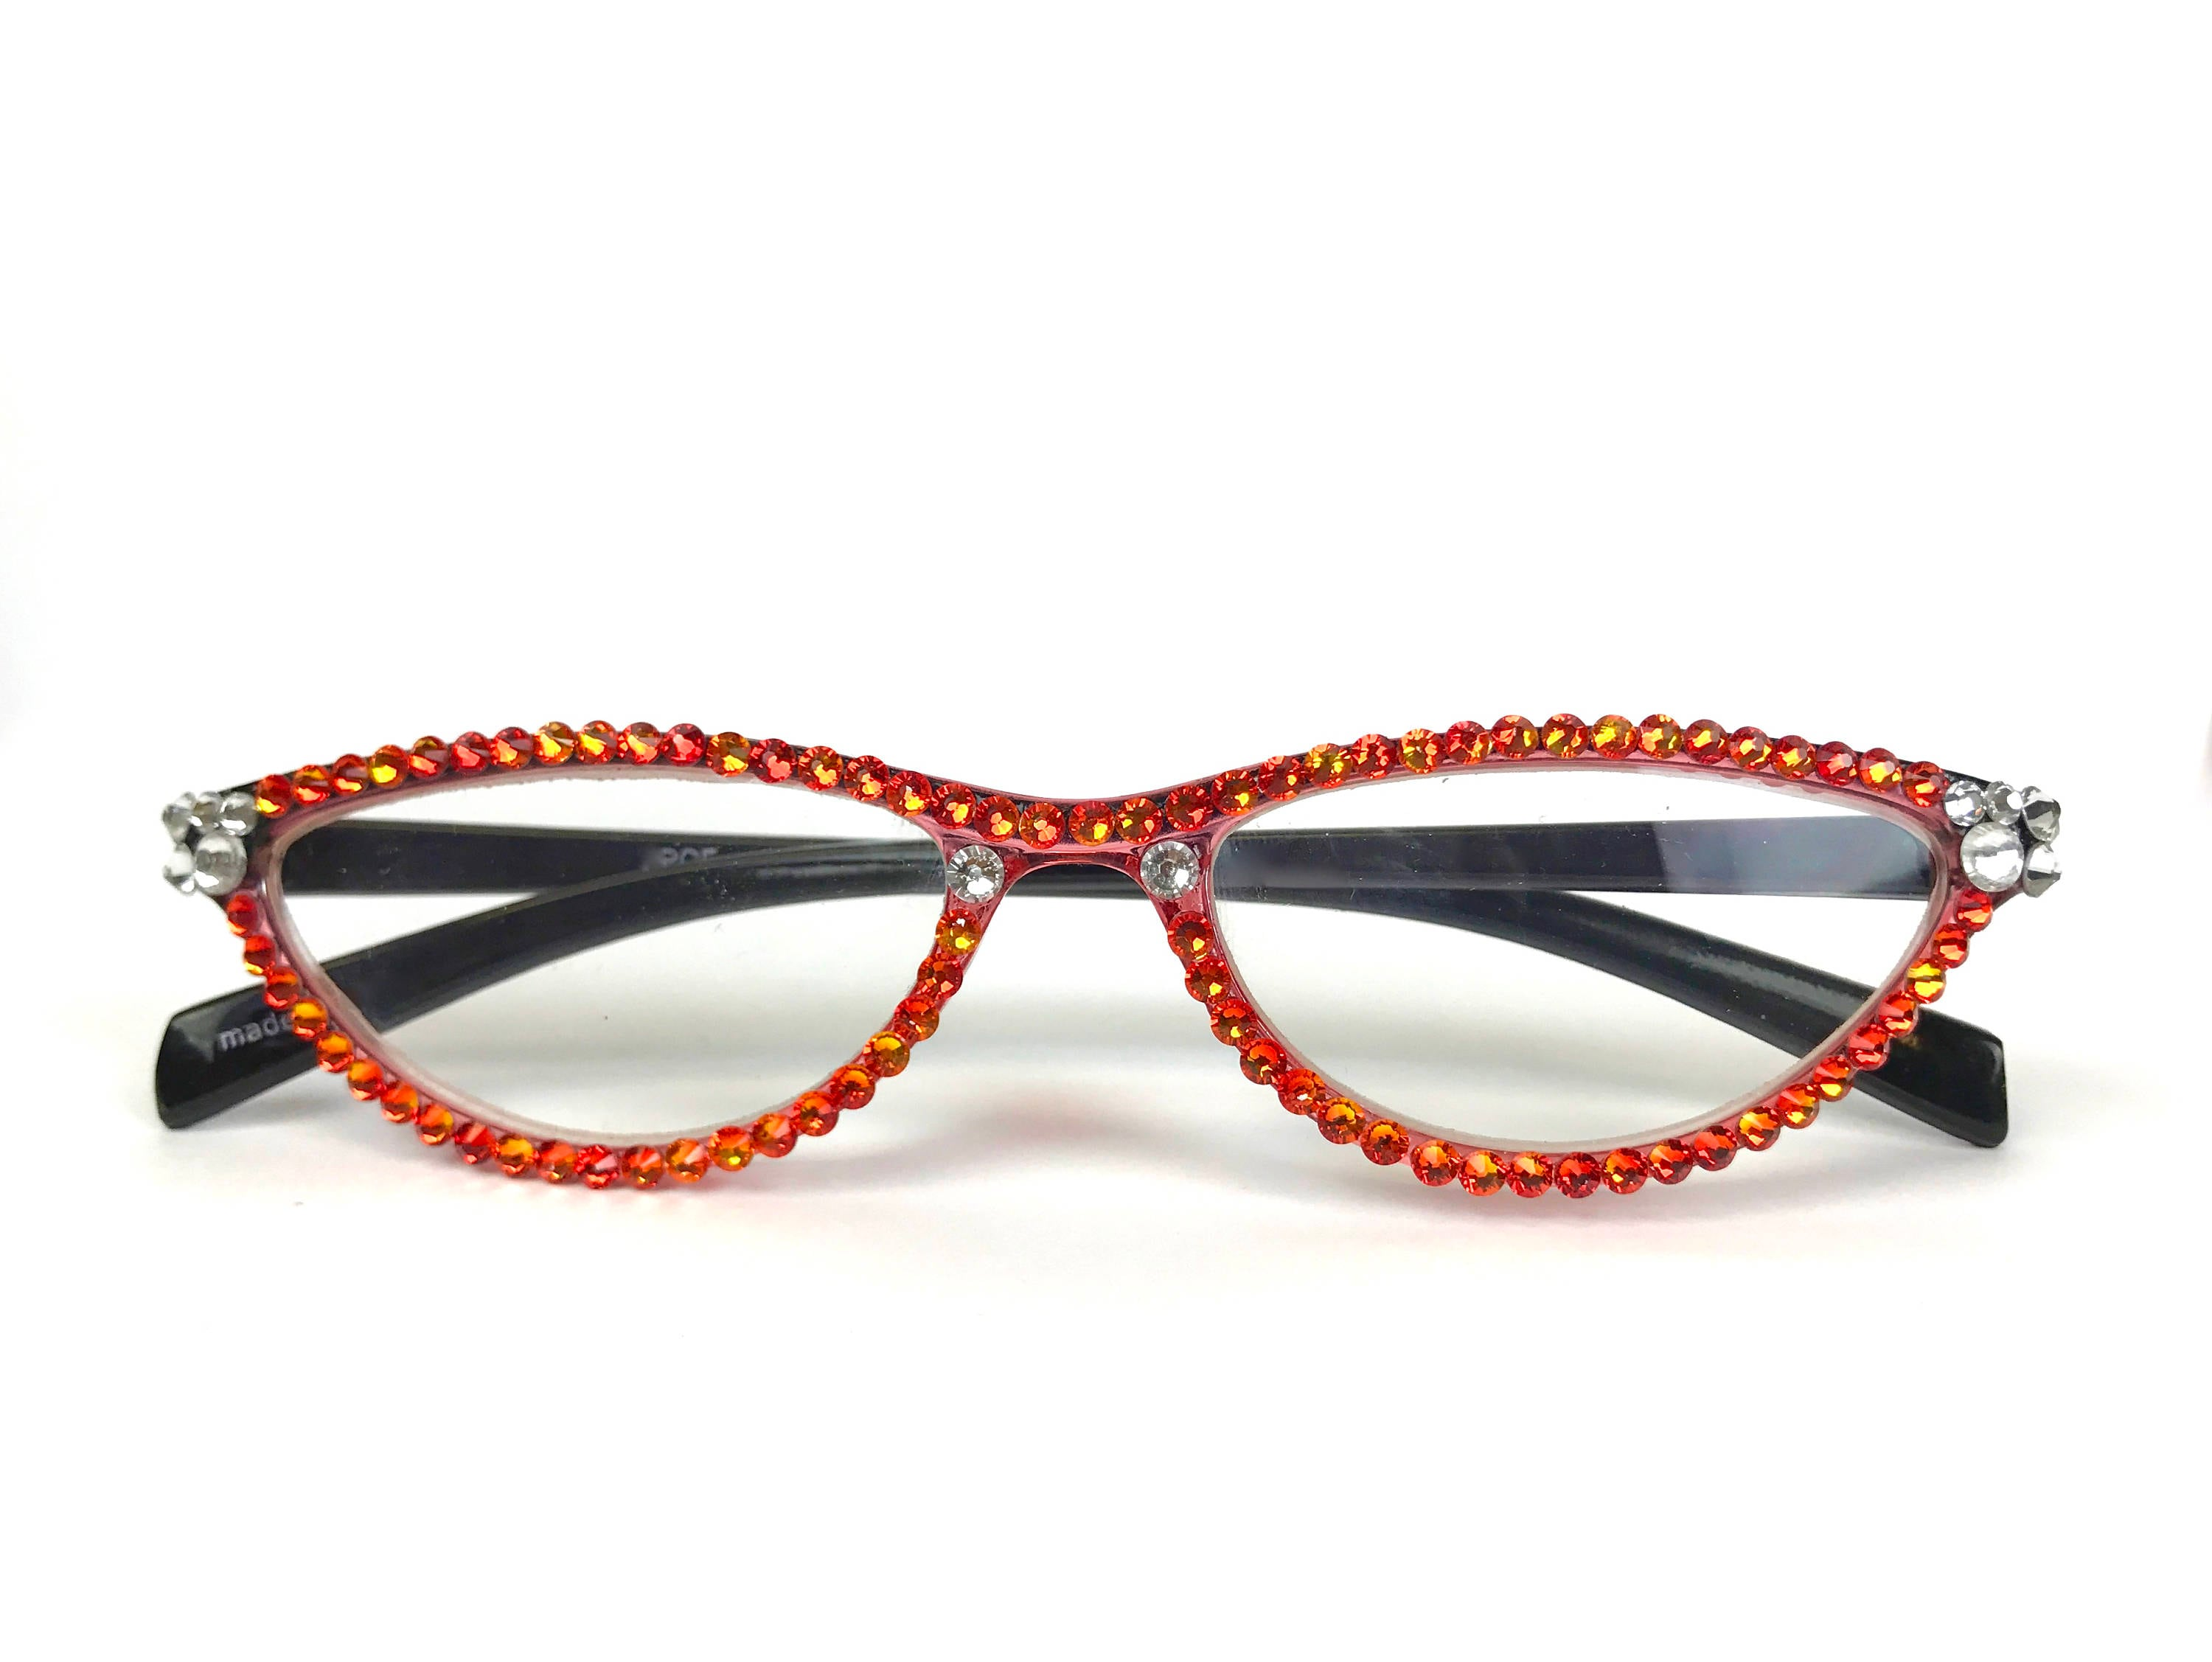 53d97a79796d Cat-Eye Reading Glasses made with Swarovski Crystals